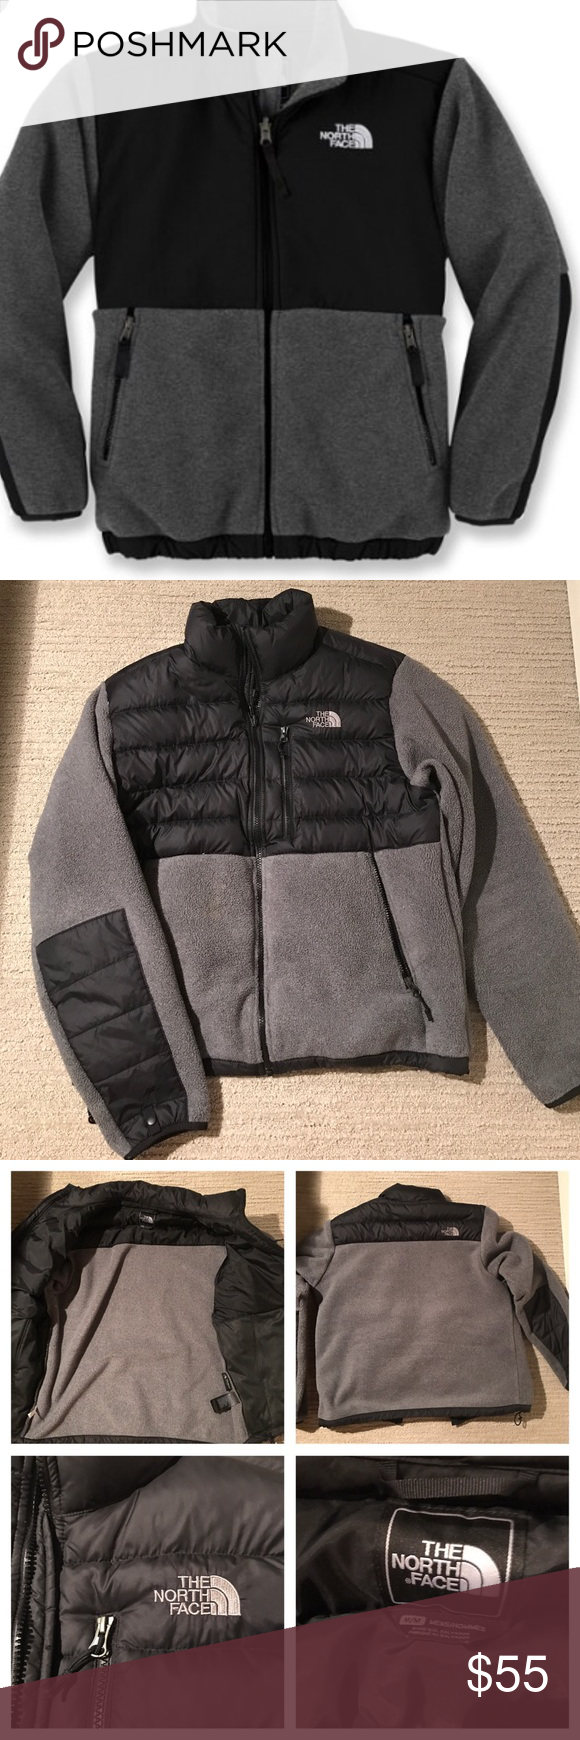 Men S Northface Fleece Down Jacket 550 Rn 61661 The North Face